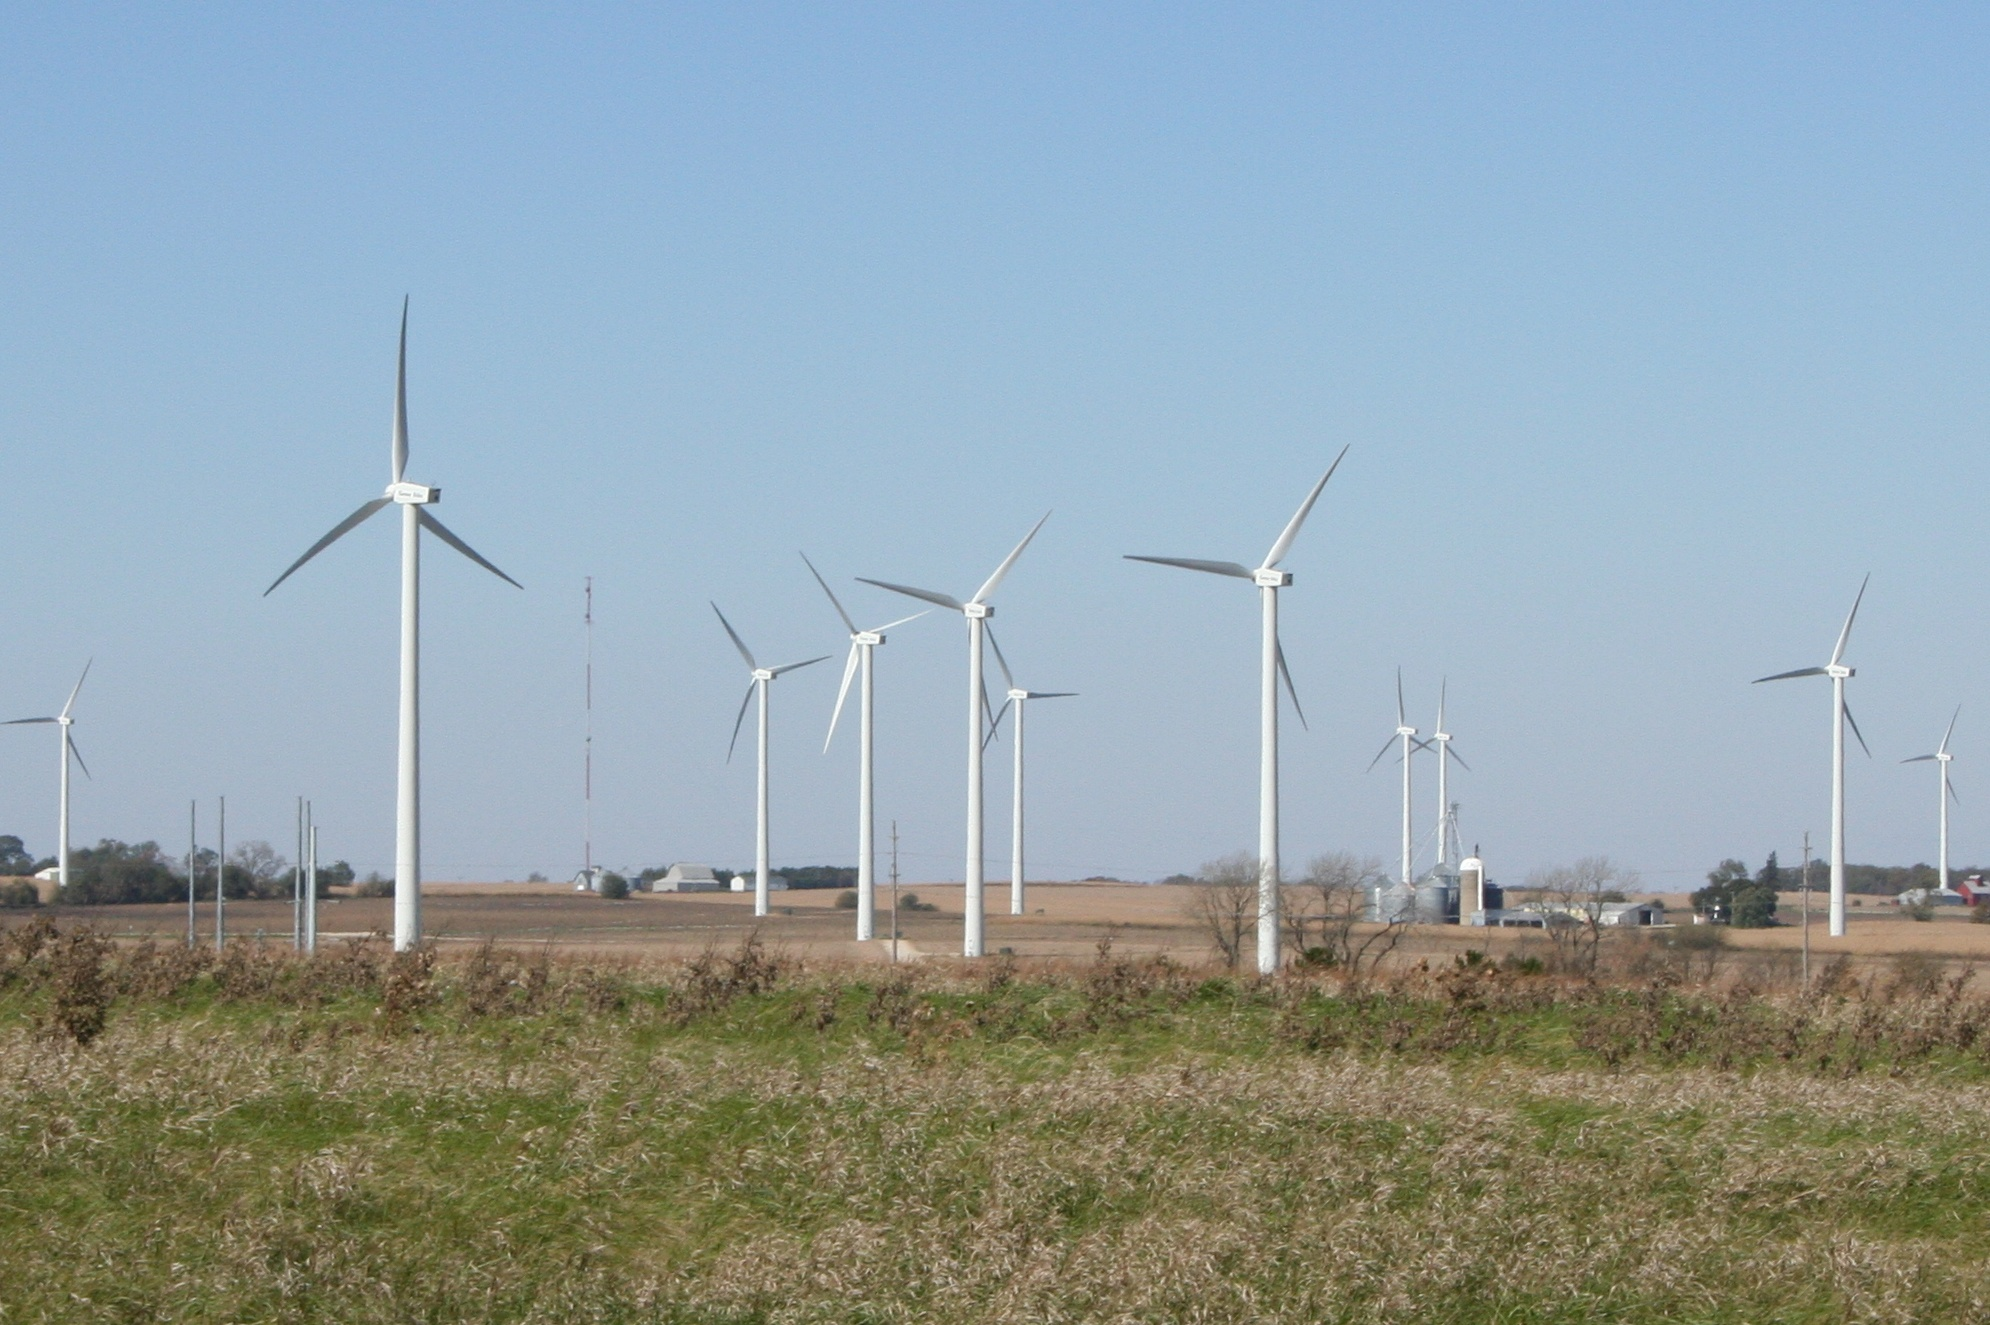 Wind power generation facilities were among the first renewable energy resources developed in Illinois